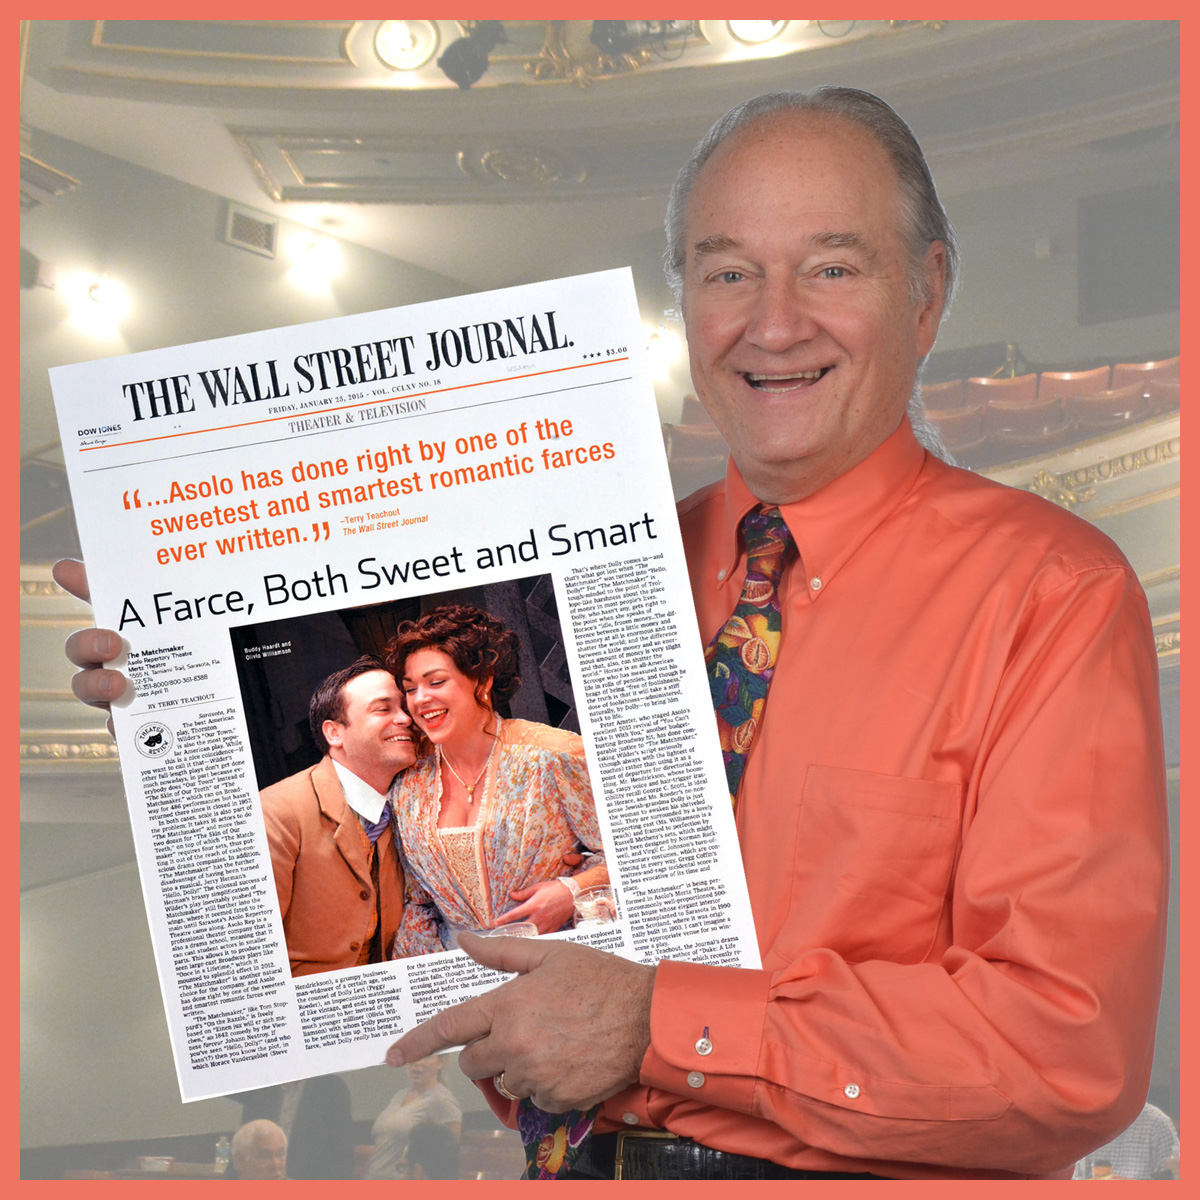 Matchmake Wall Street Journal Review Asolo Rep Theatre